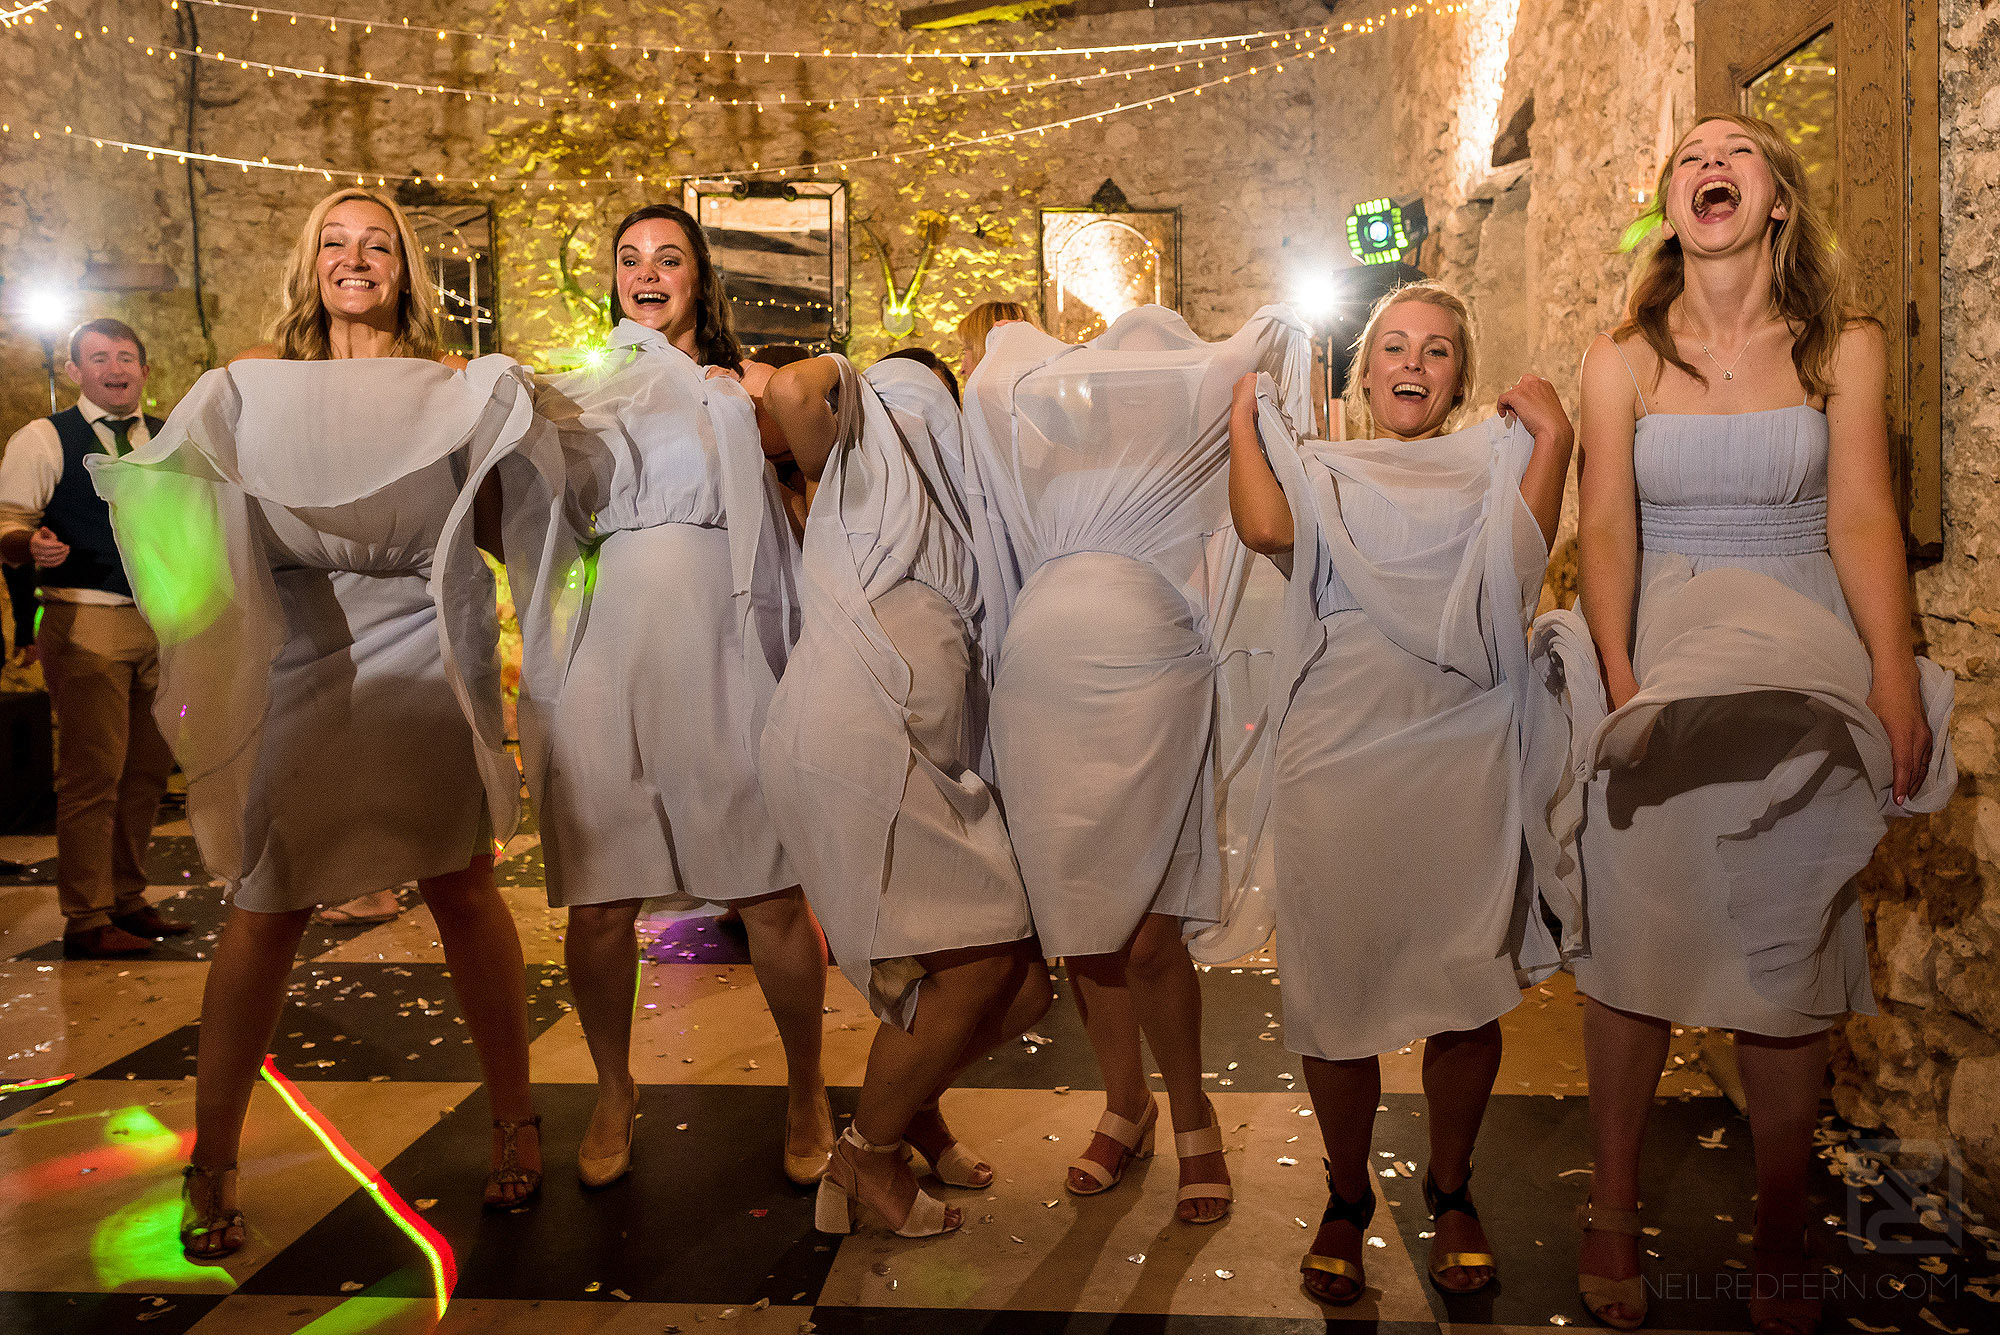 funny photograph of bridesmaids lifting up dresses during wedding reception